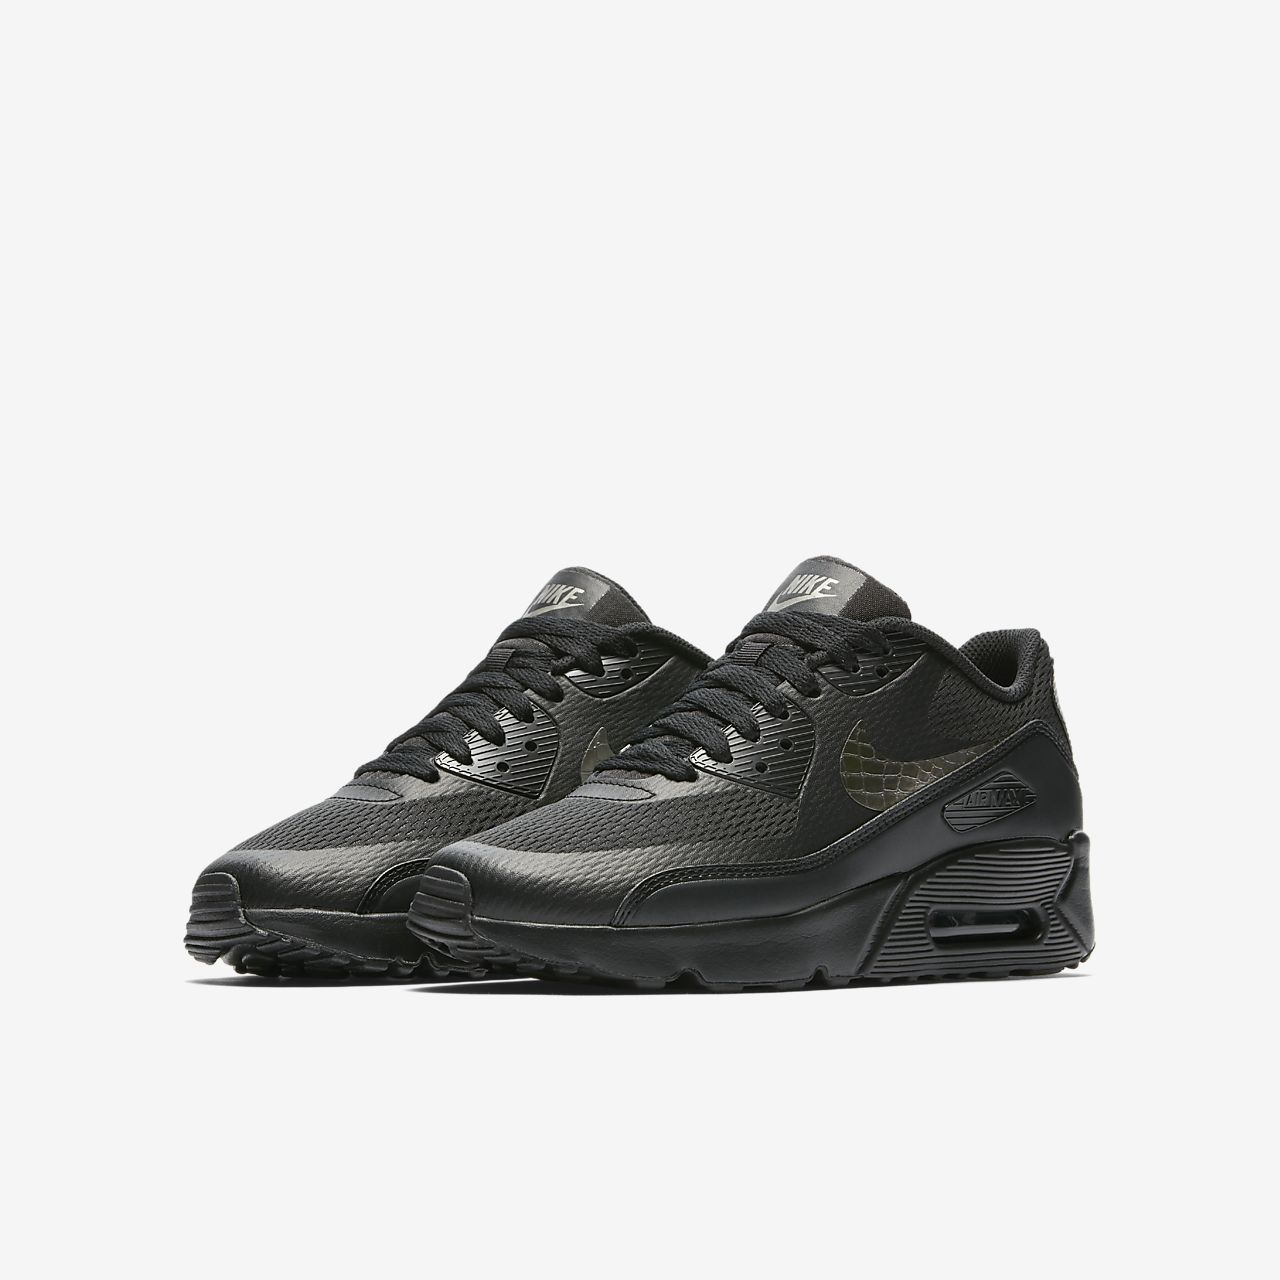 nike air max 90 ultra se trainers in black and pewter